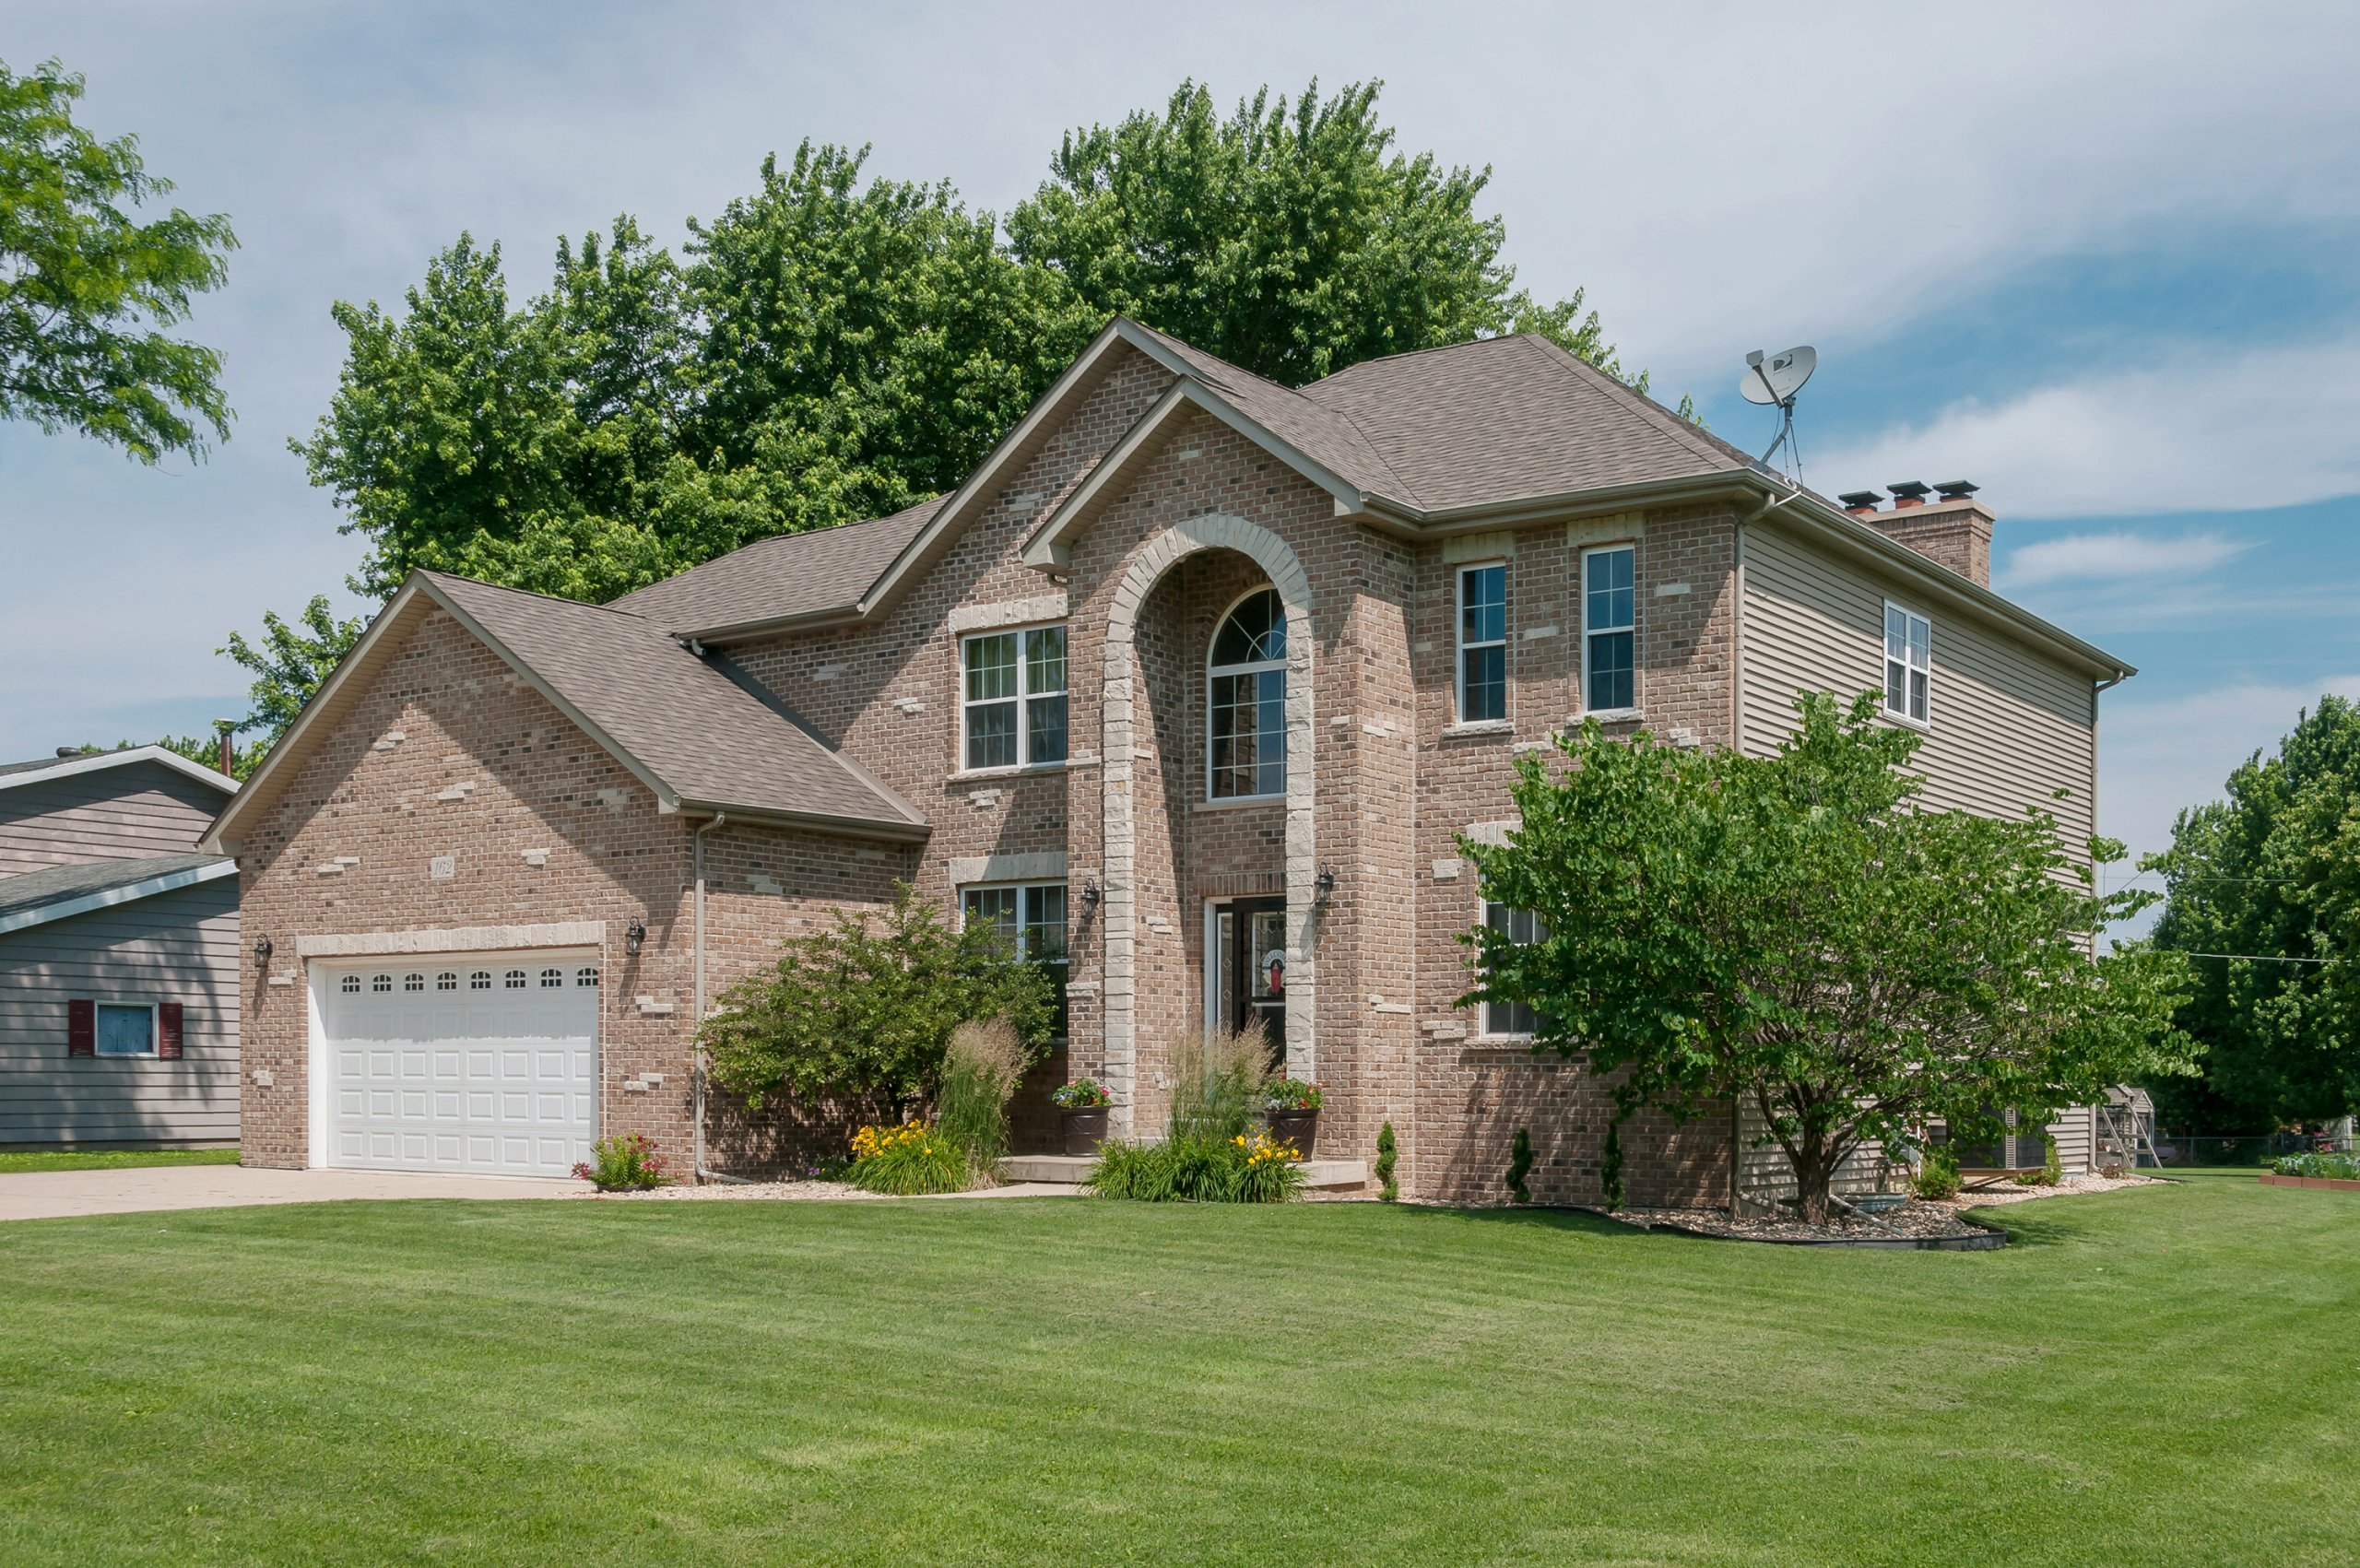 Exterior photography of Lake Holiday, Illinois 2 story all brick home